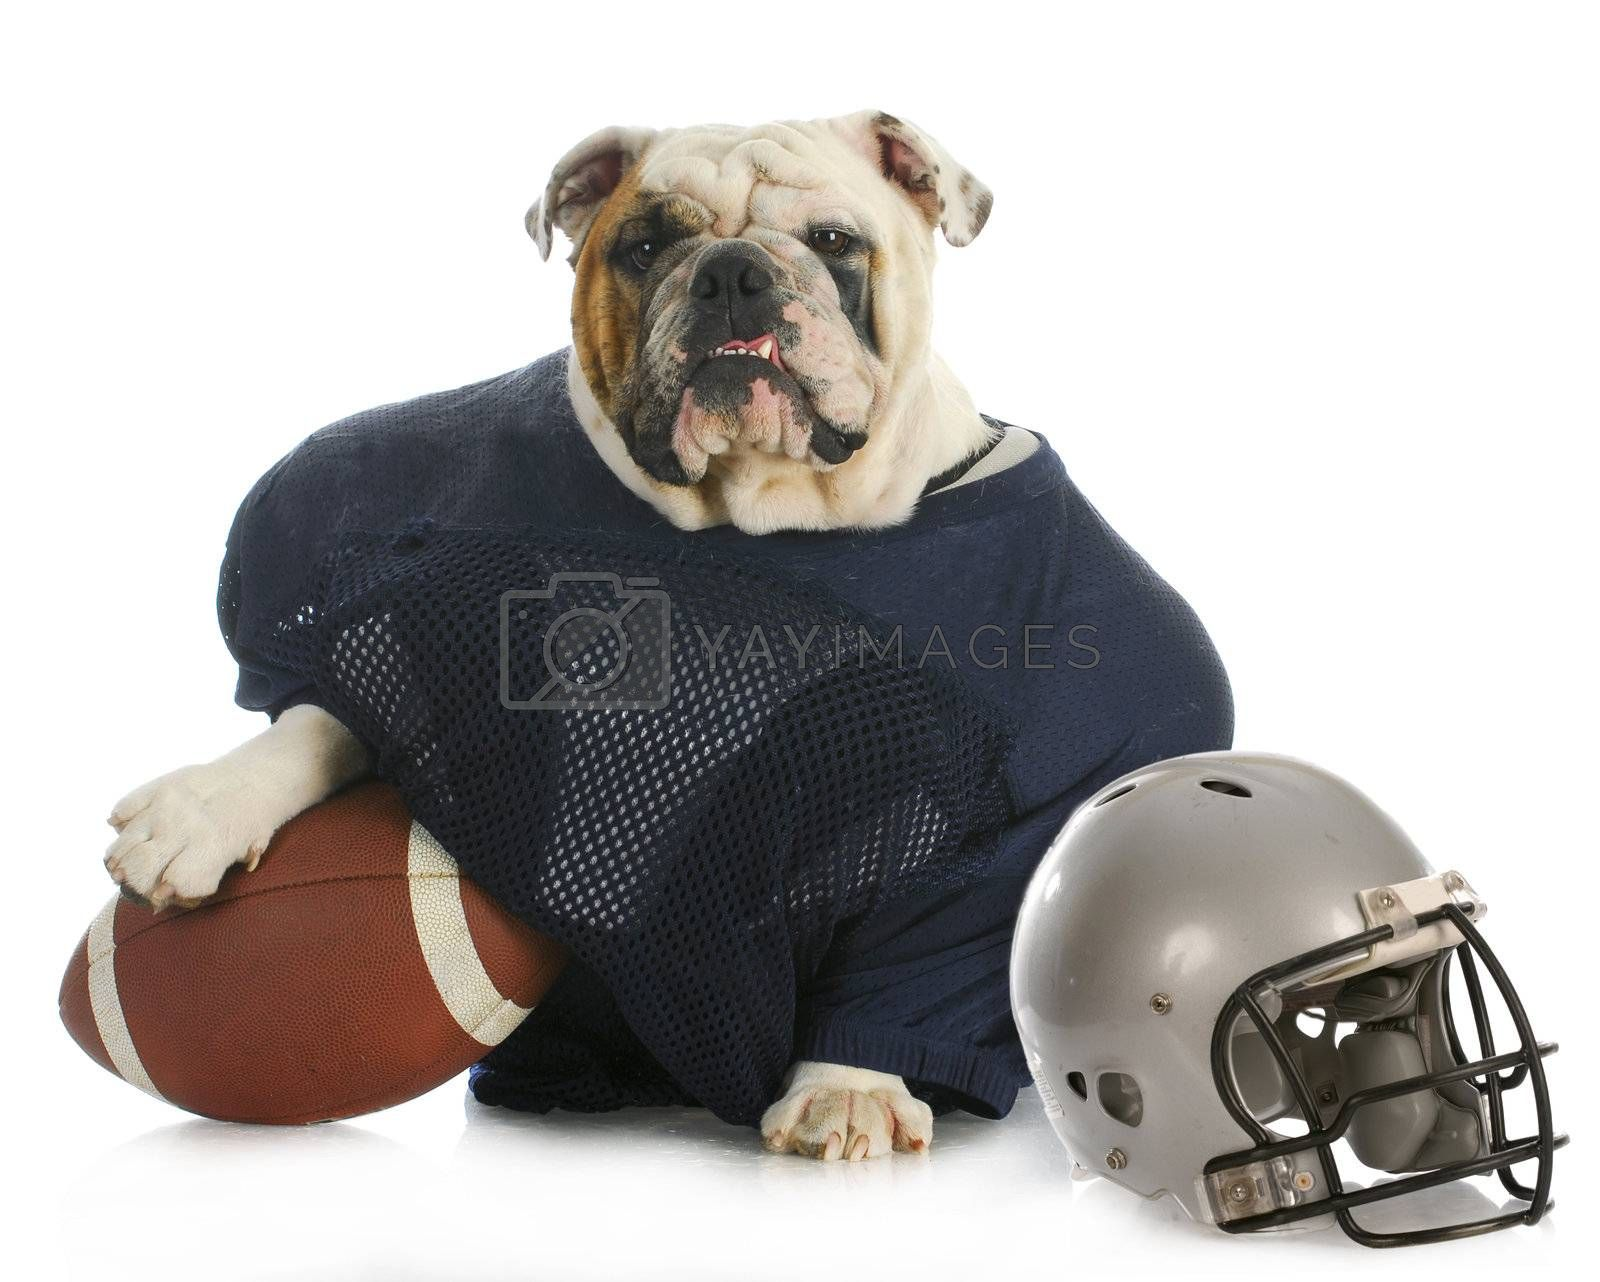 sports hound - english bulldog dressed up like a football player on white background